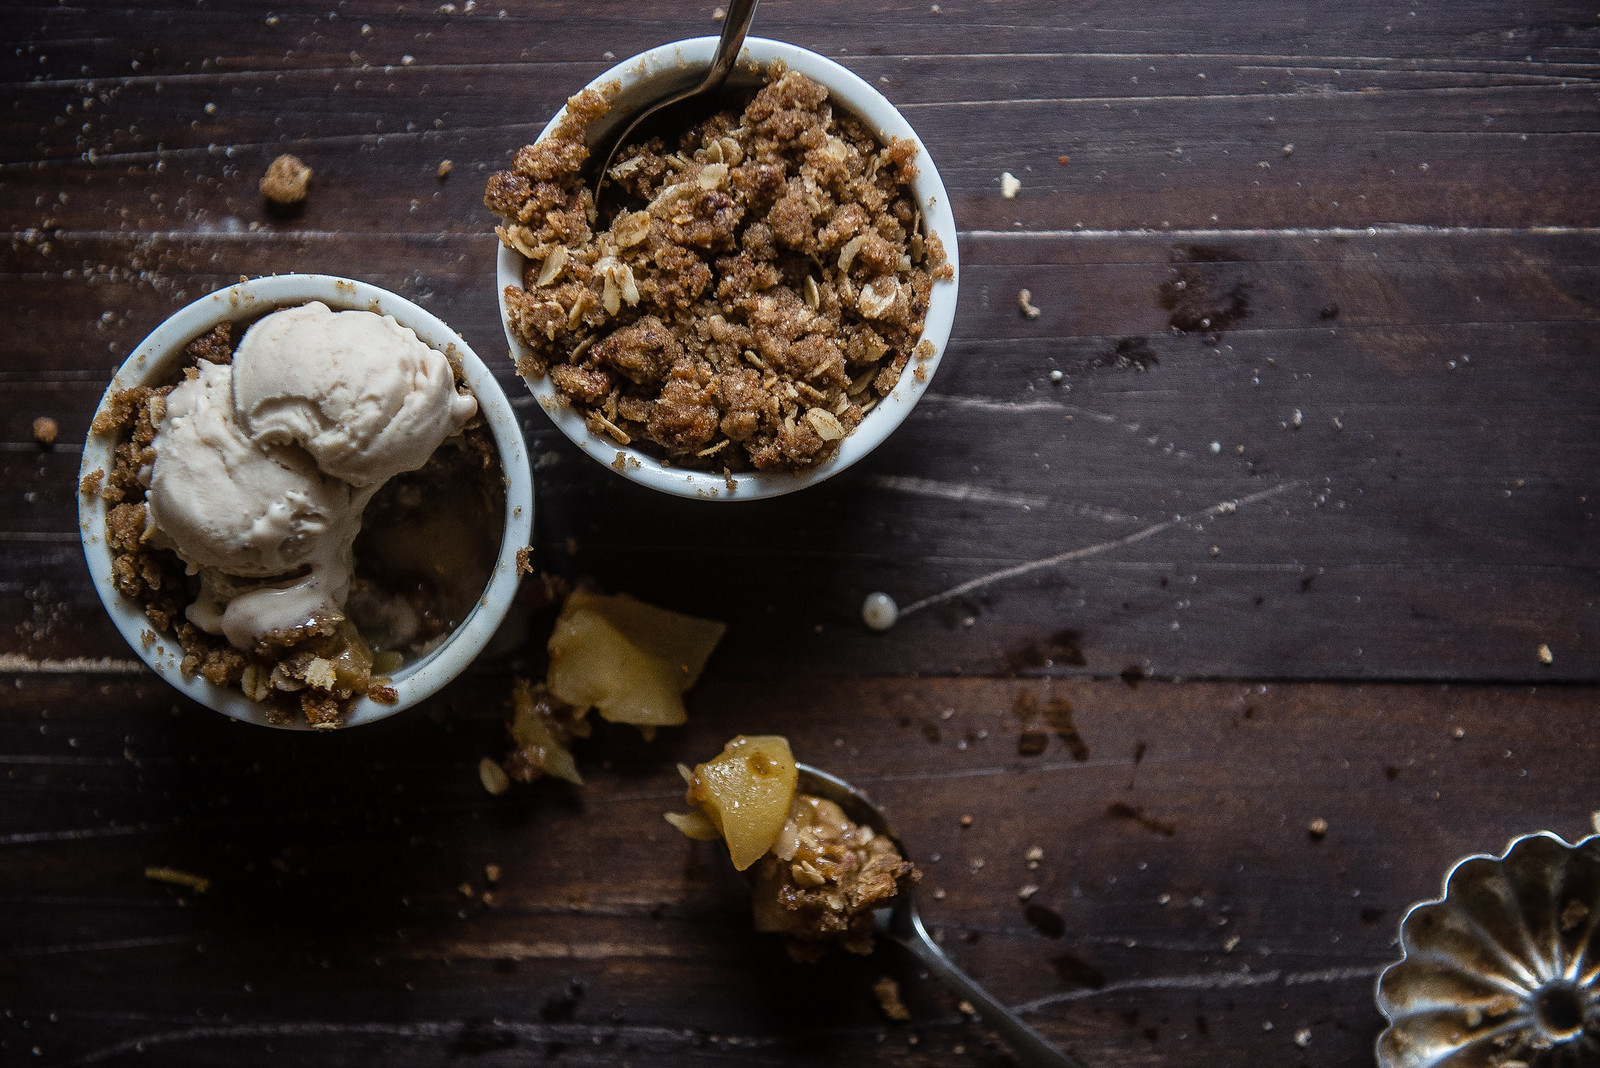 Brown butter cheddar apple crumbles for two, for Verily Magazine.